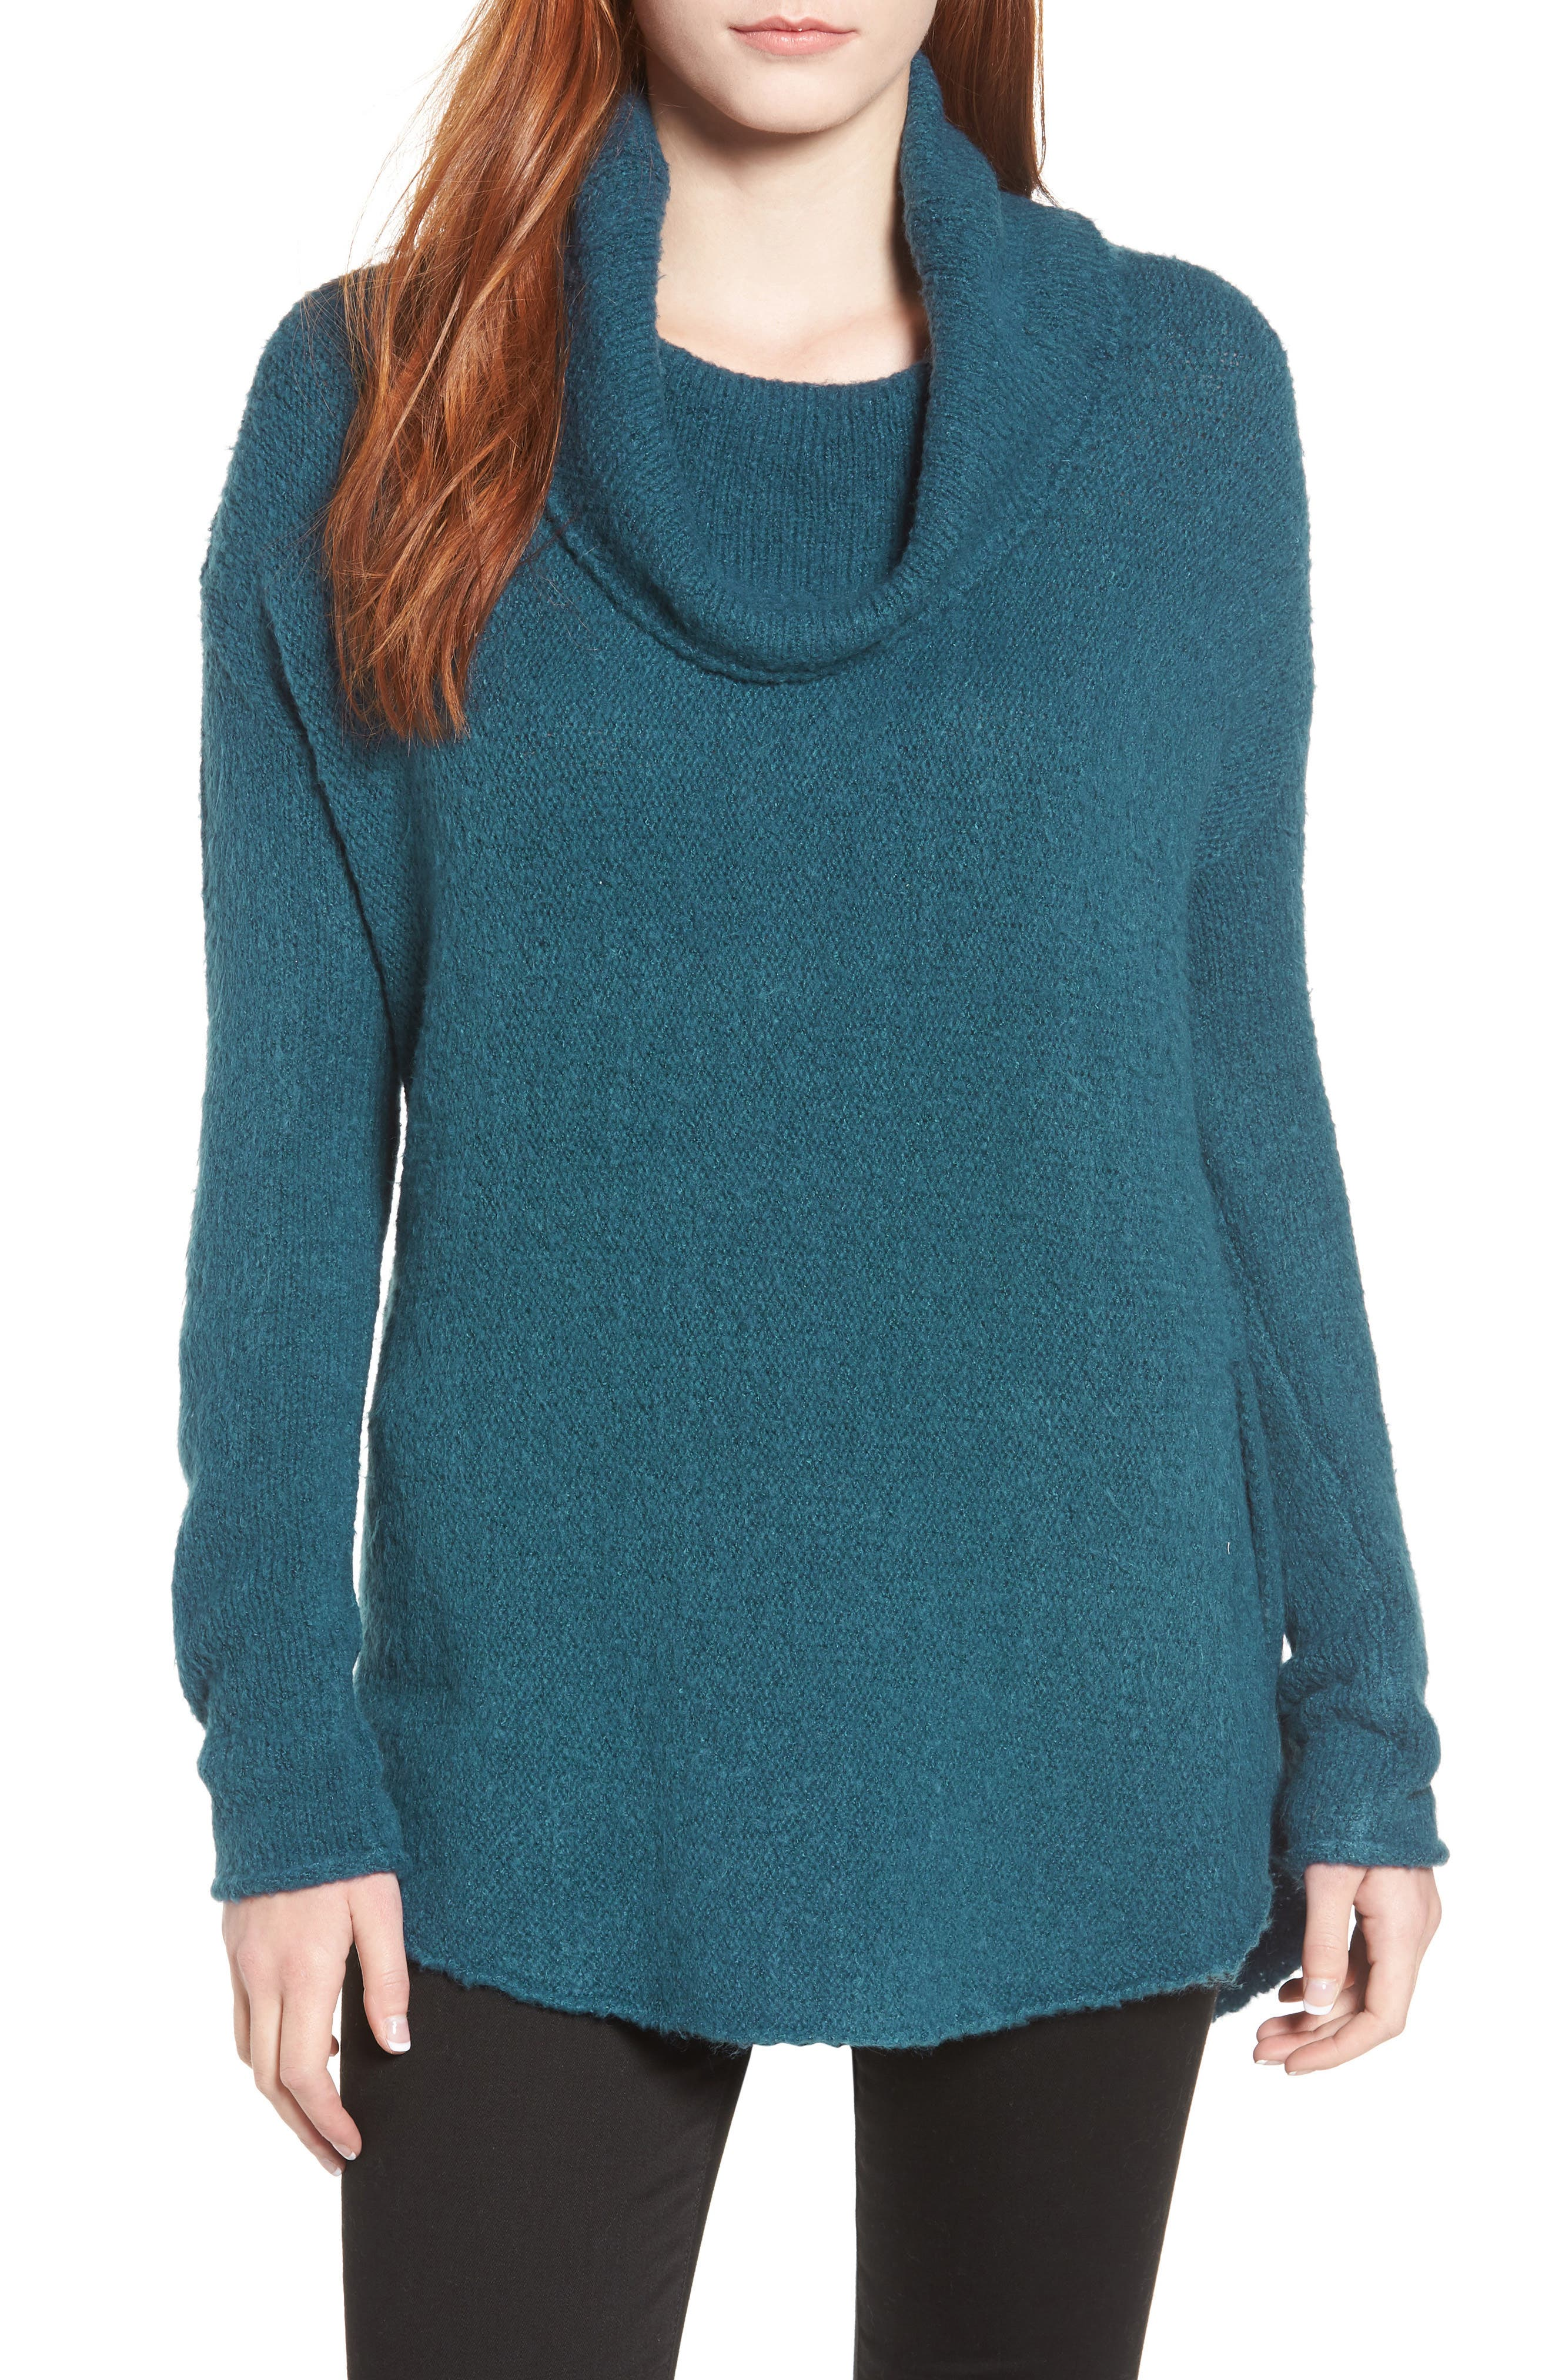 Tunic Sweater,                             Main thumbnail 1, color,                             TEAL CORAL